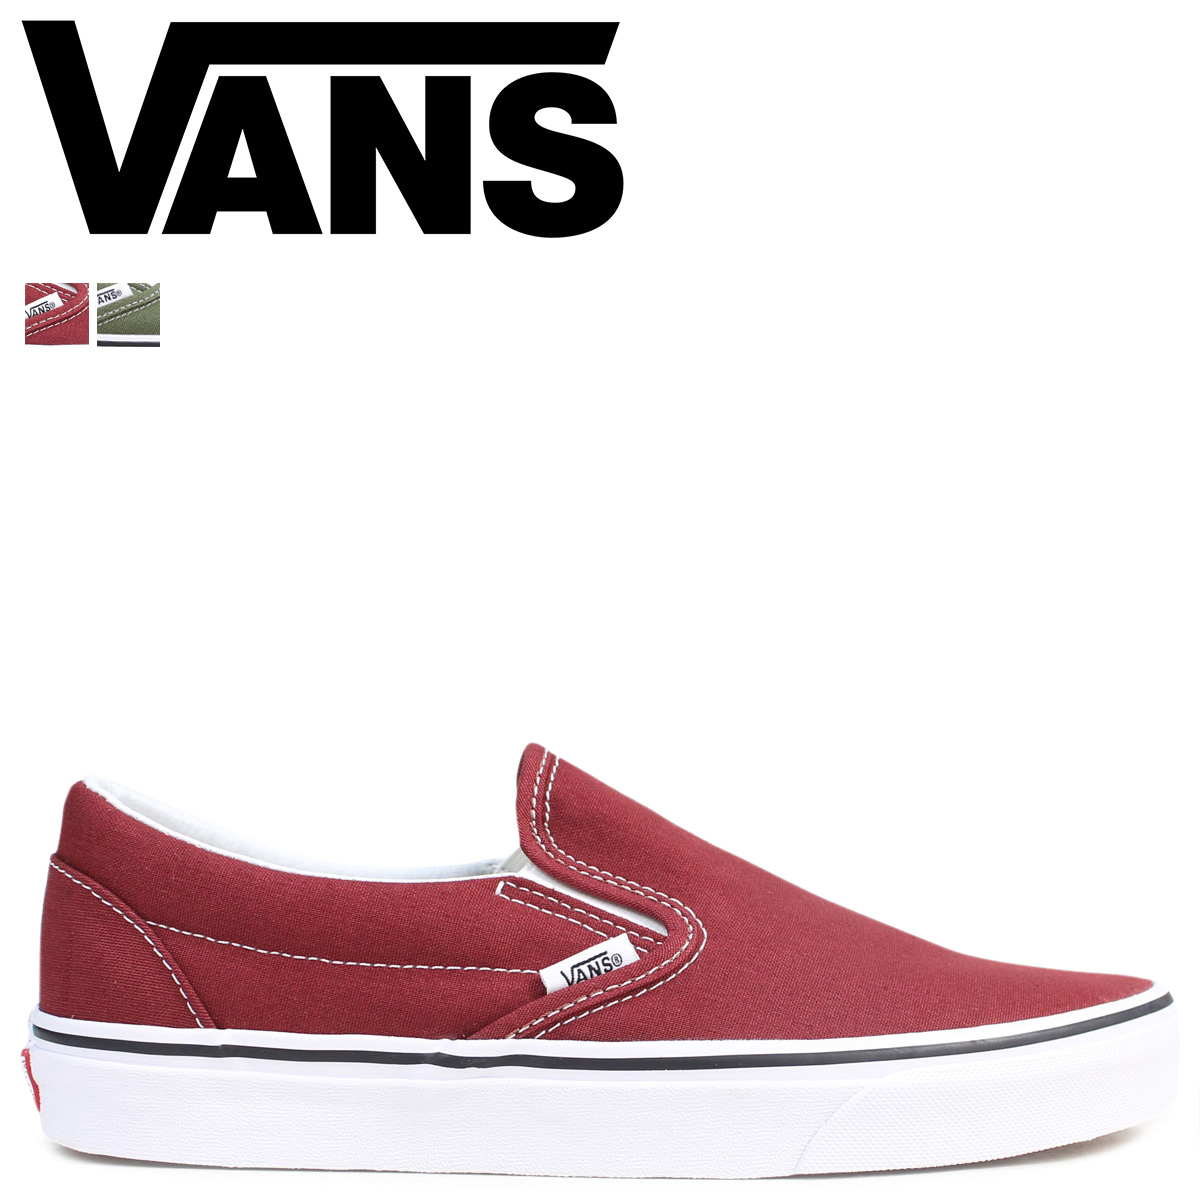 fabf4a1a VANS CLASSIC SLIP-ON slip-ons men sneakers vans station wagons VN0A38F7OVK  VN0A38F7OW2 shoes brown green [1712]